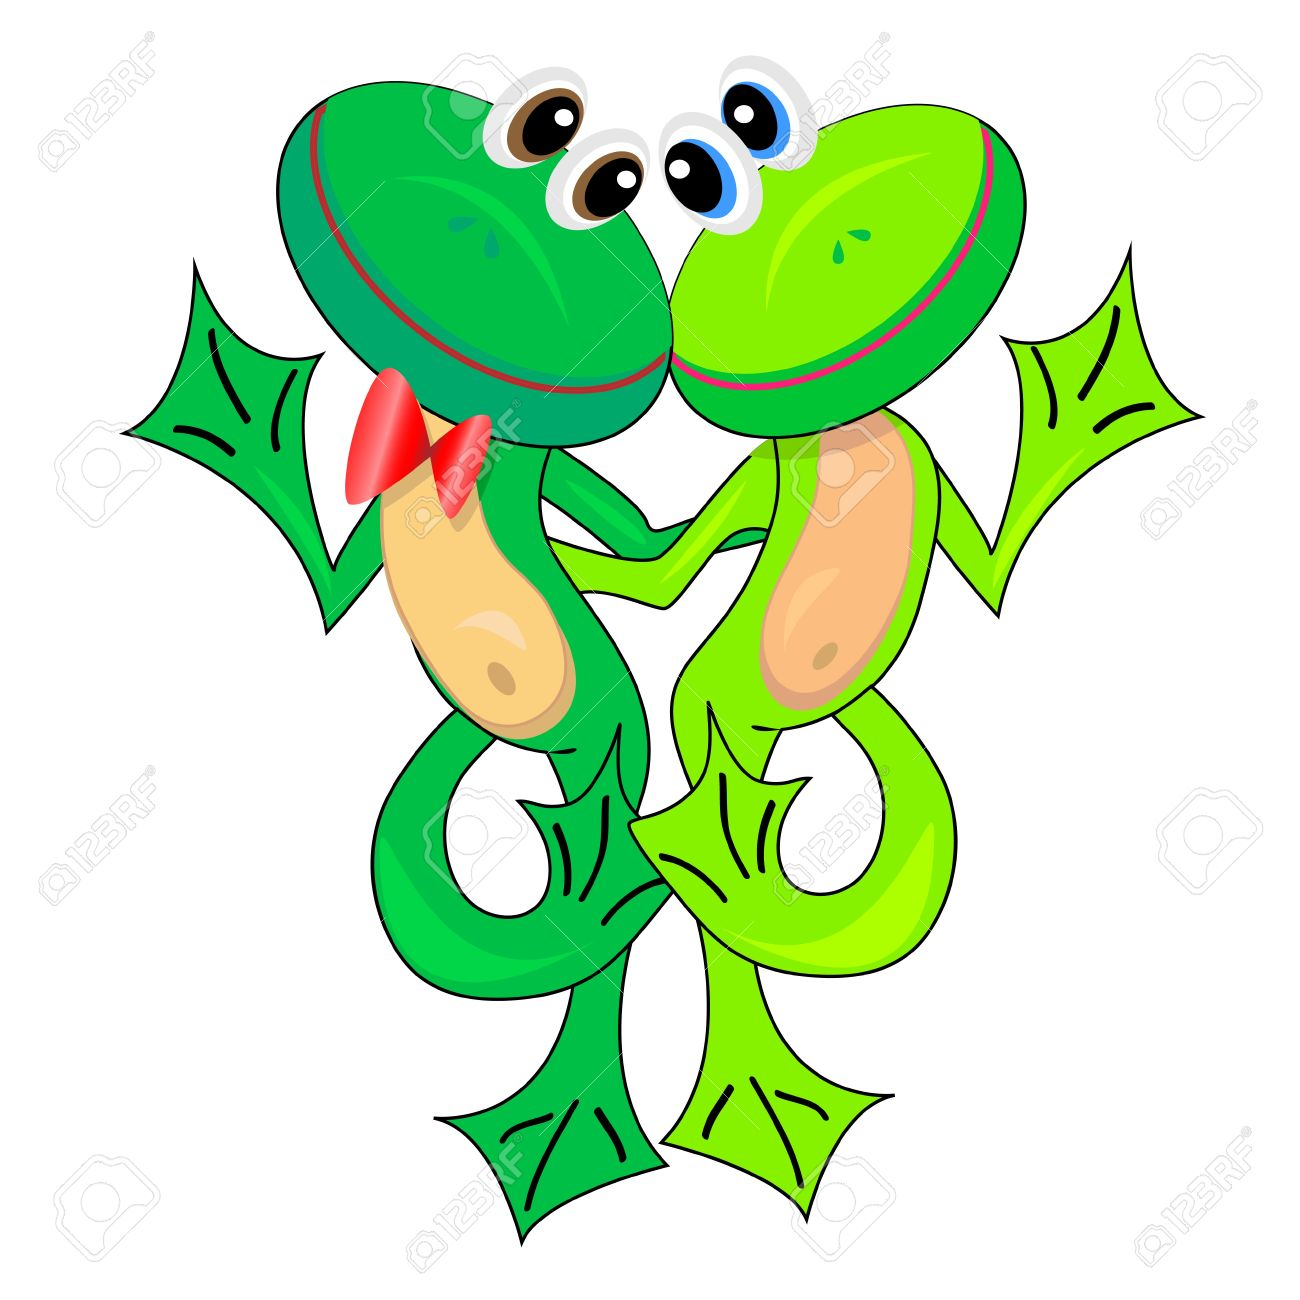 Background image none - Vector Couple Of Cute Frogs In Love Vector Illustration Isolated Character None Background